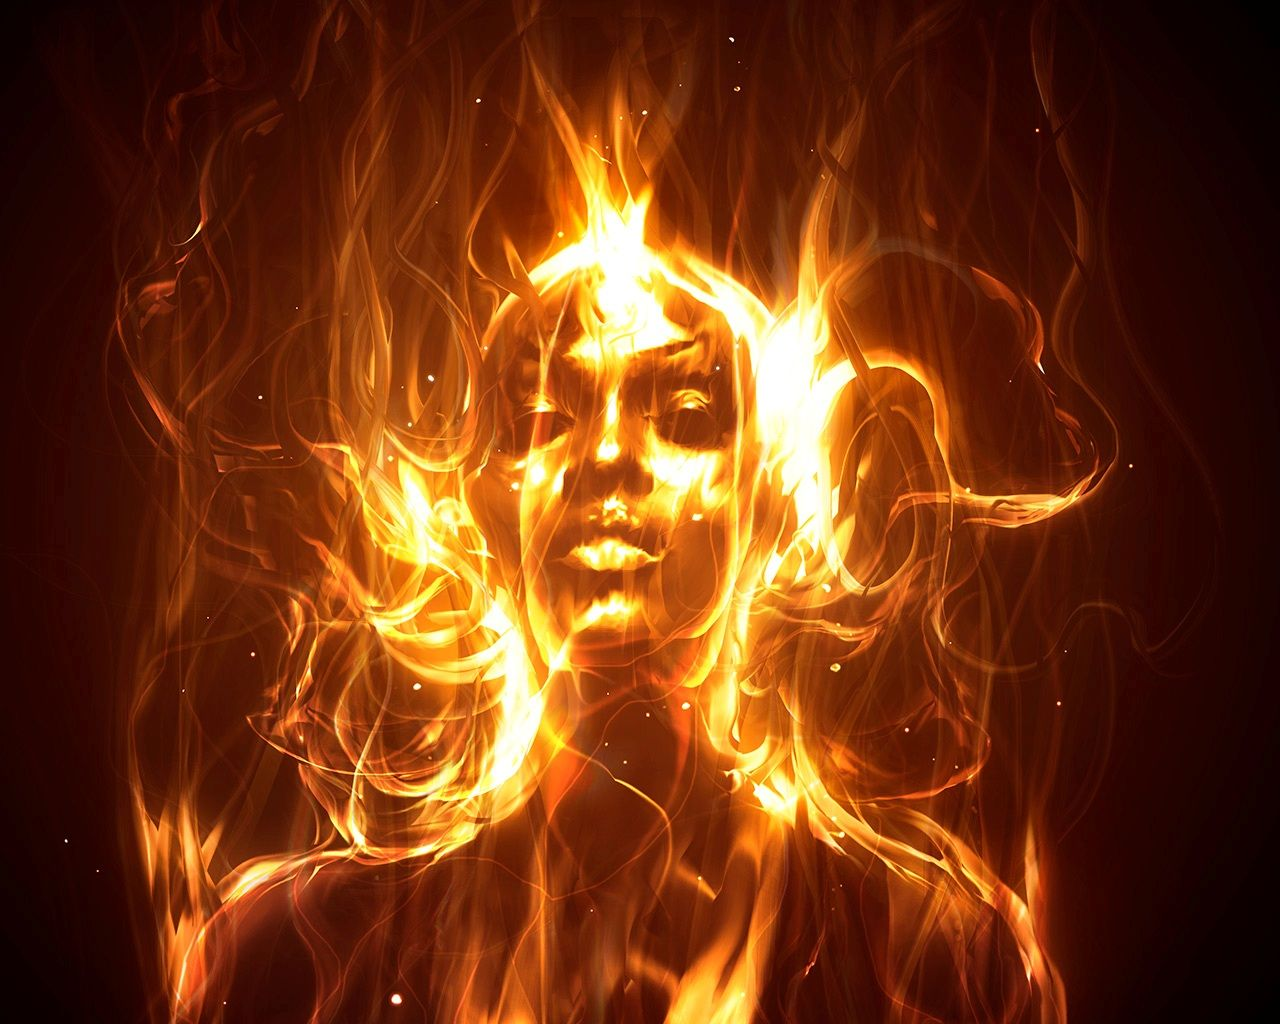 now alive with burning want, released flickering lust i